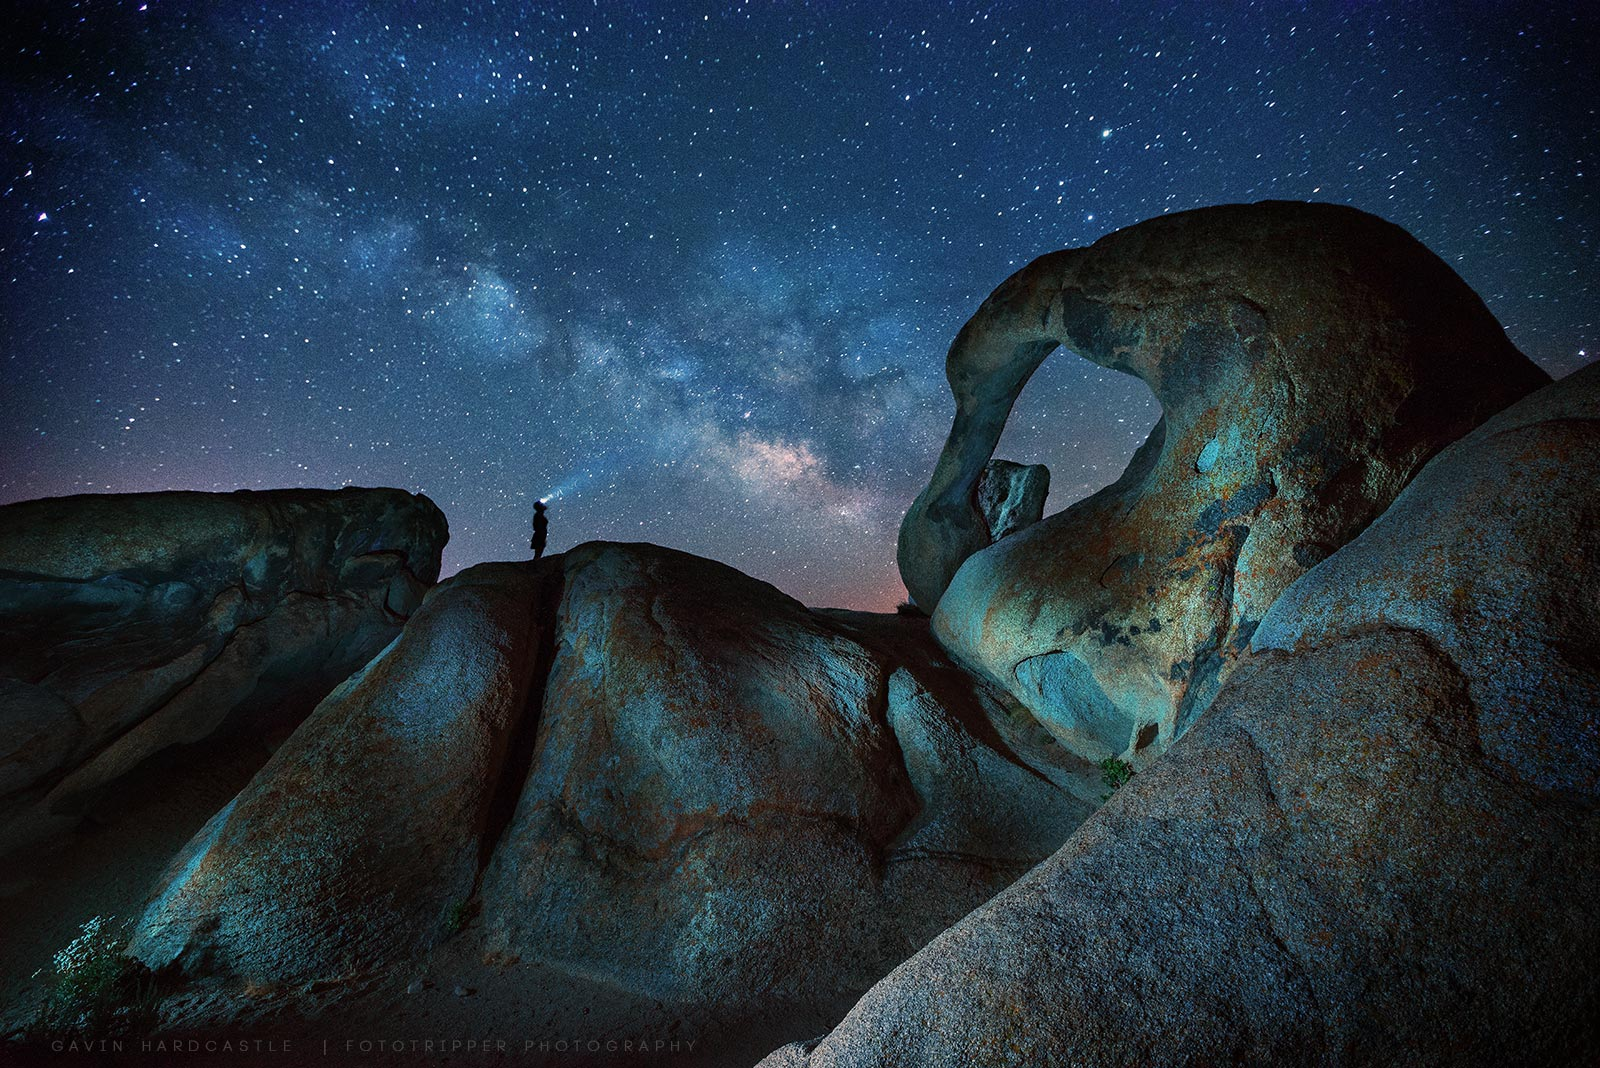 Lightroom Presets for Milky Way Astrophotography